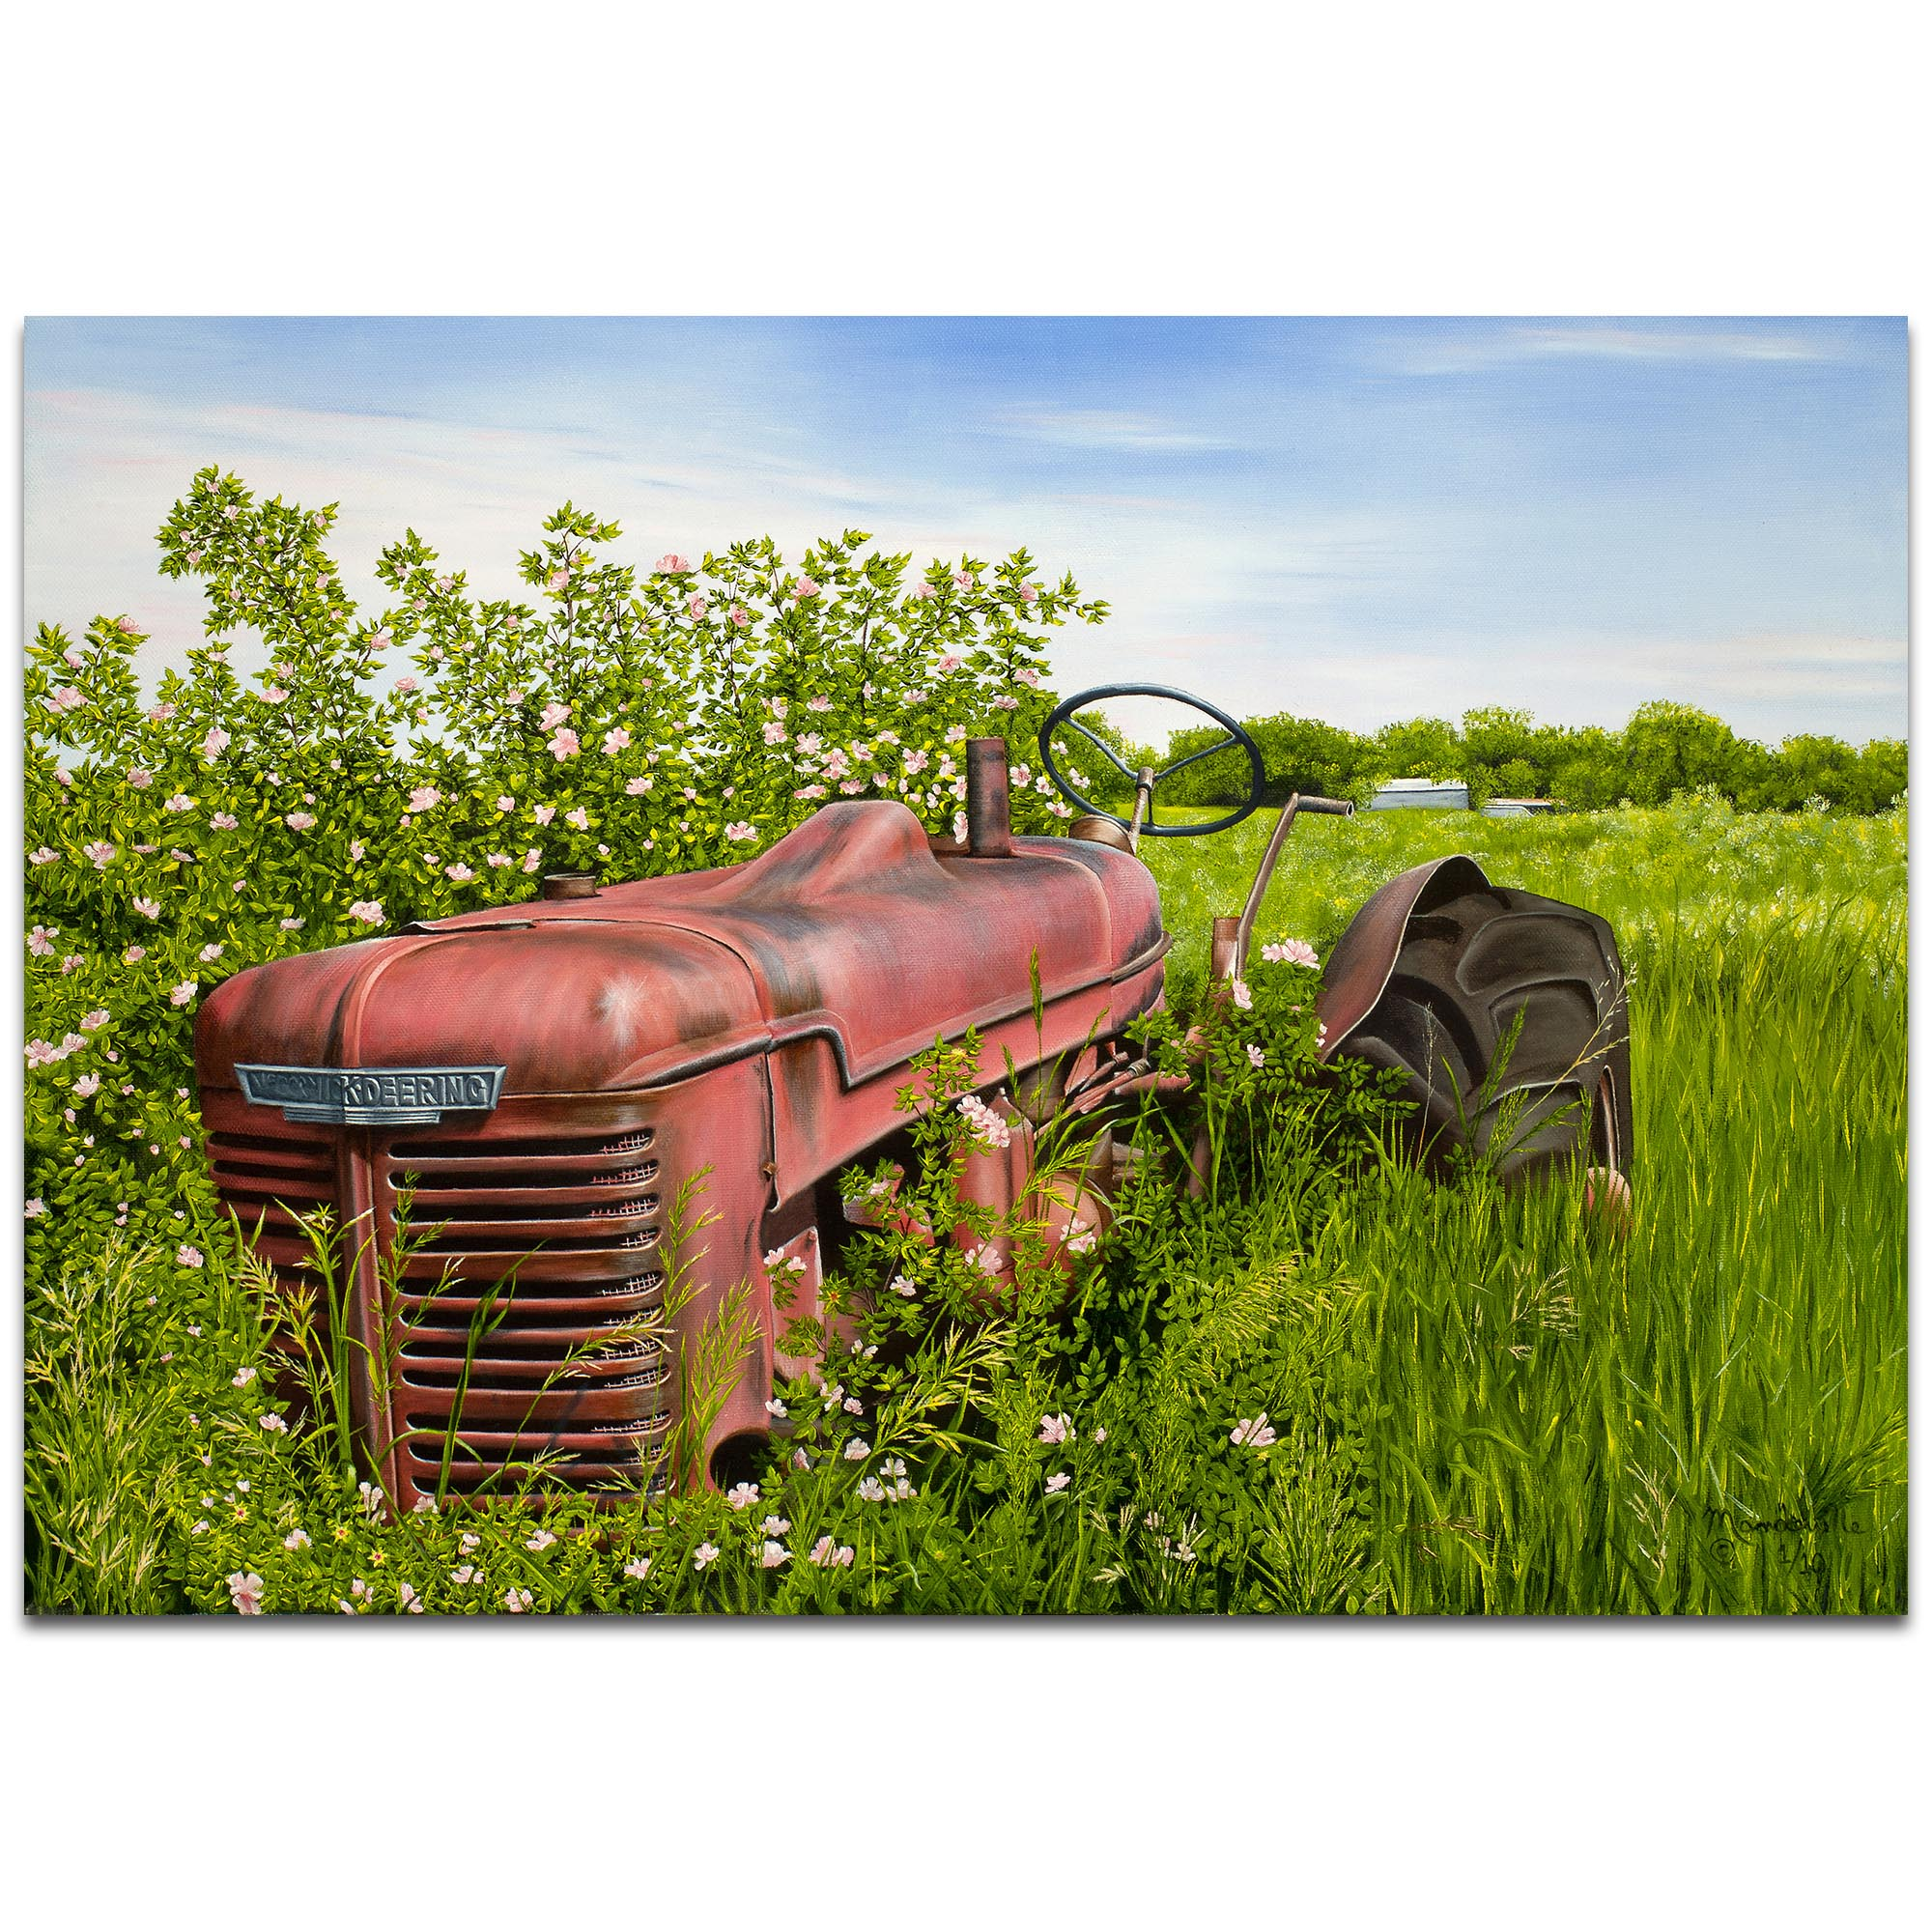 Americana Wall Art 'A Blanket of Roses' - Classic Tractor Decor on Metal or Plexiglass